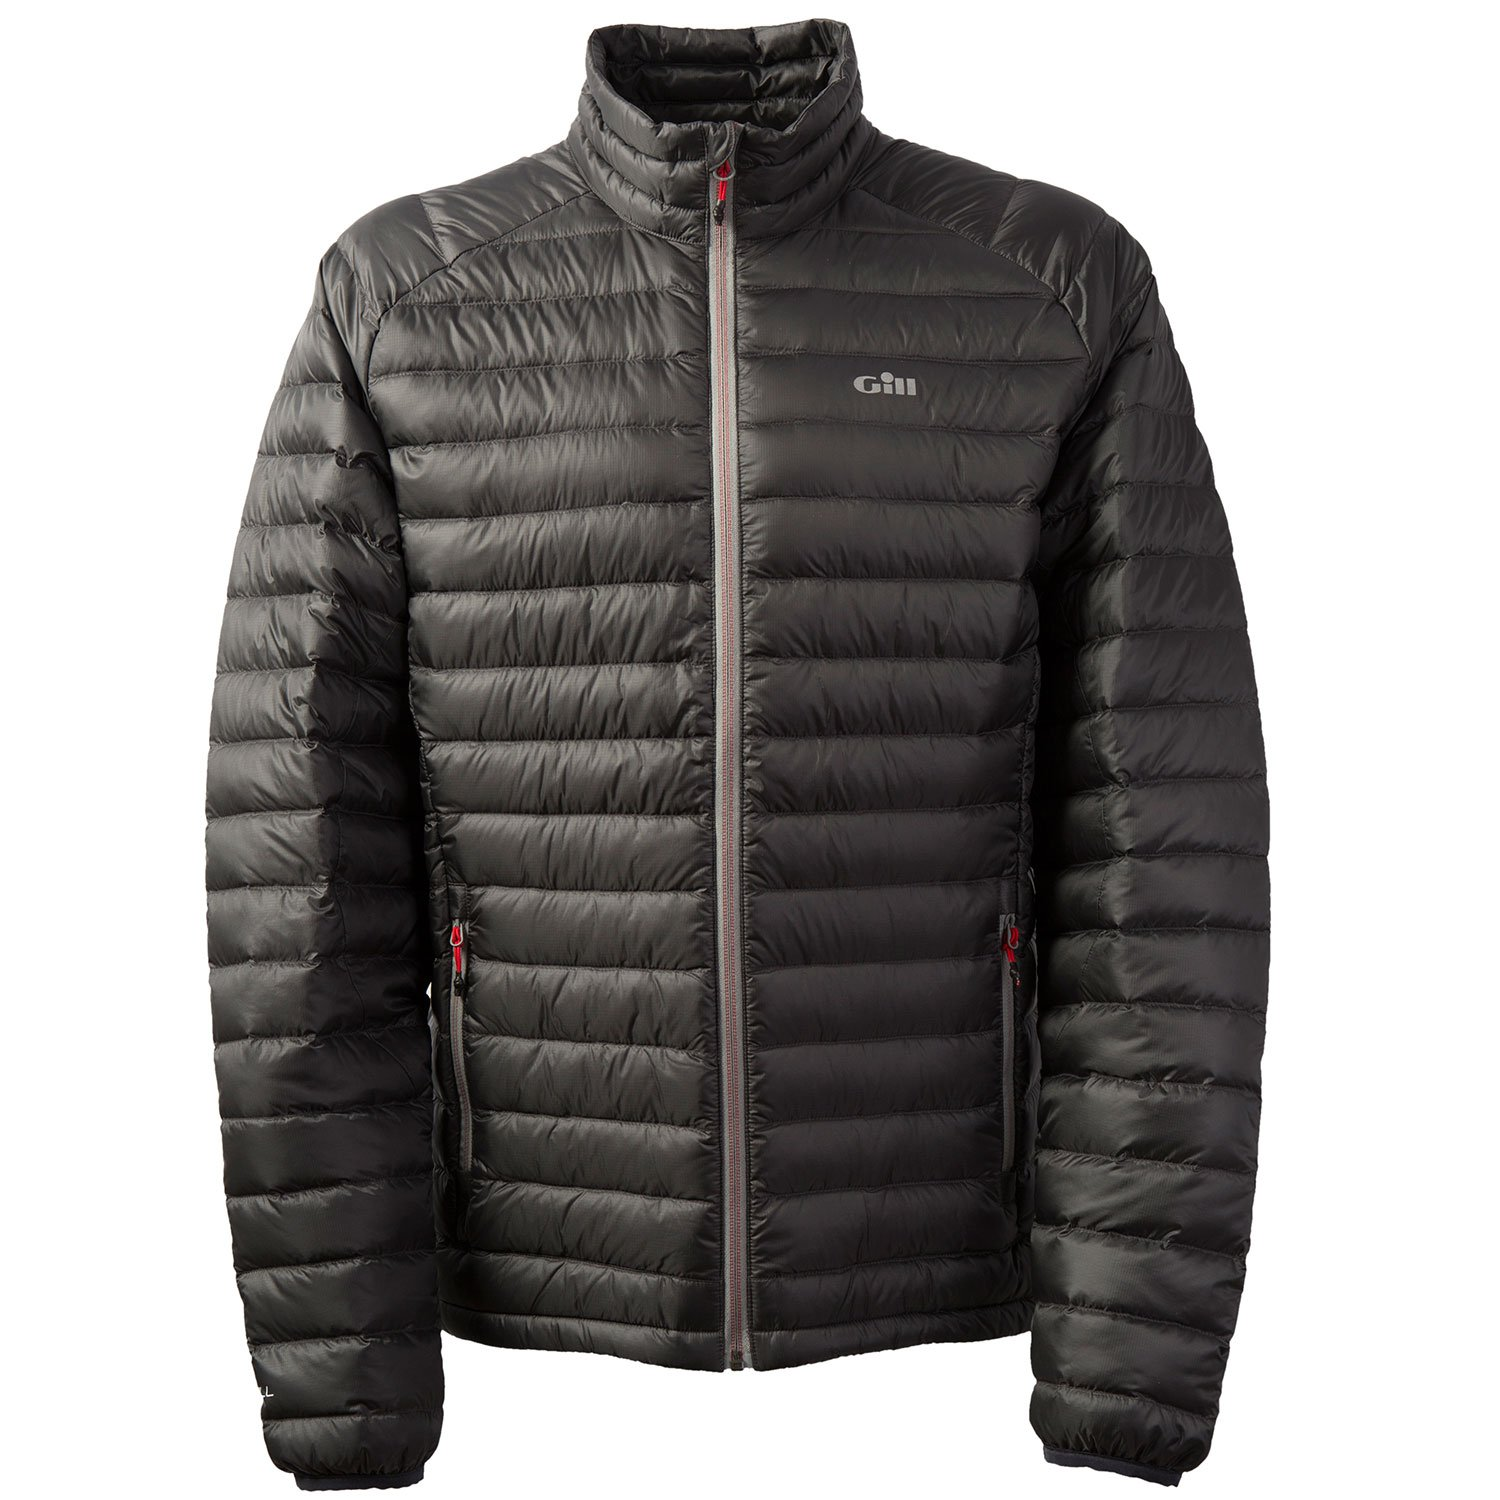 2017 Gill Hydrophobe Down Jacket Charcoal 1062 Size - - Large by Gill